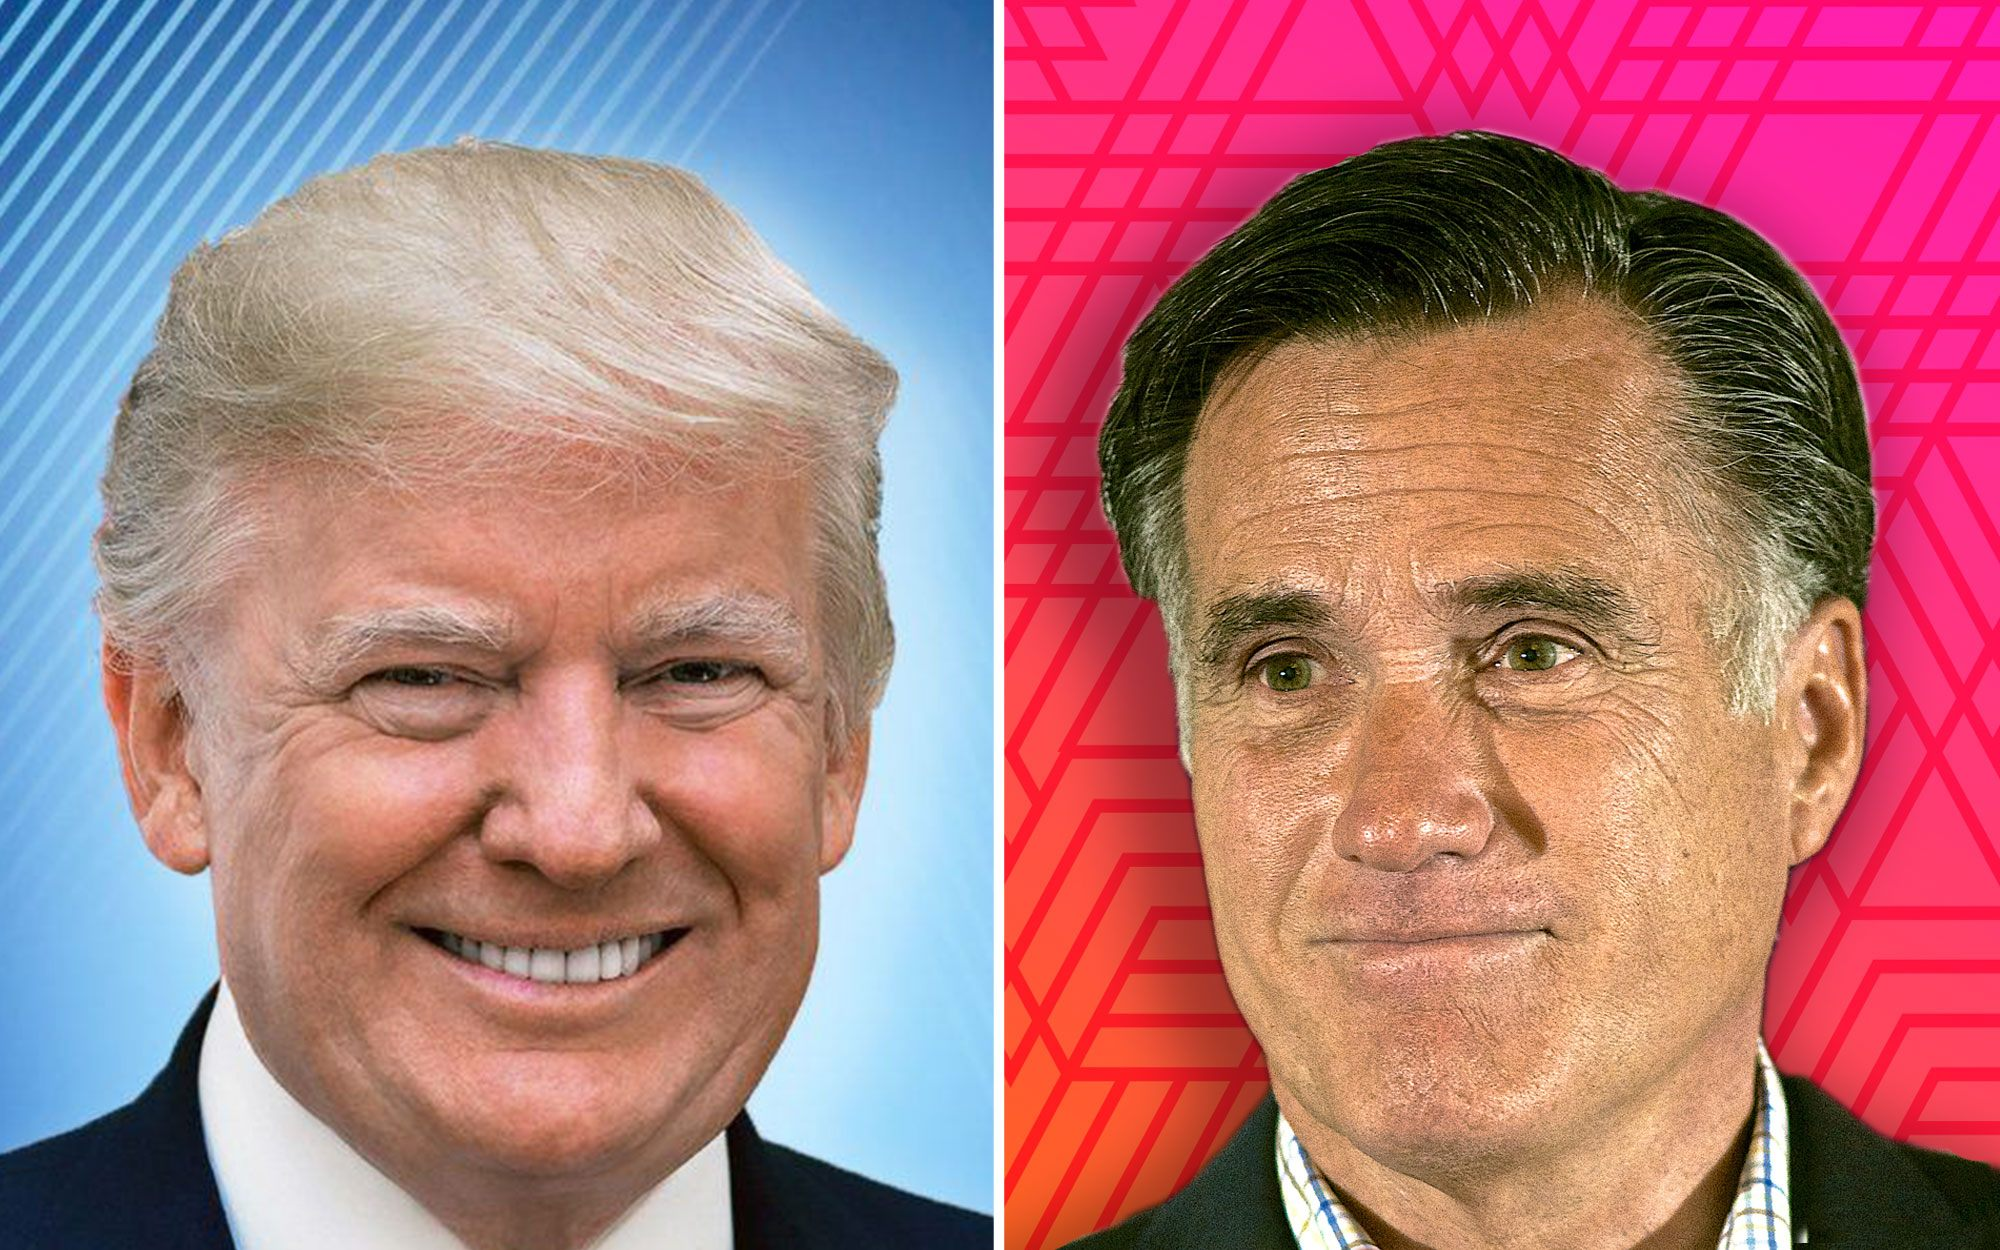 MItt Romney: Is He Considering a 2020 Primary Run Against Donald Trump?